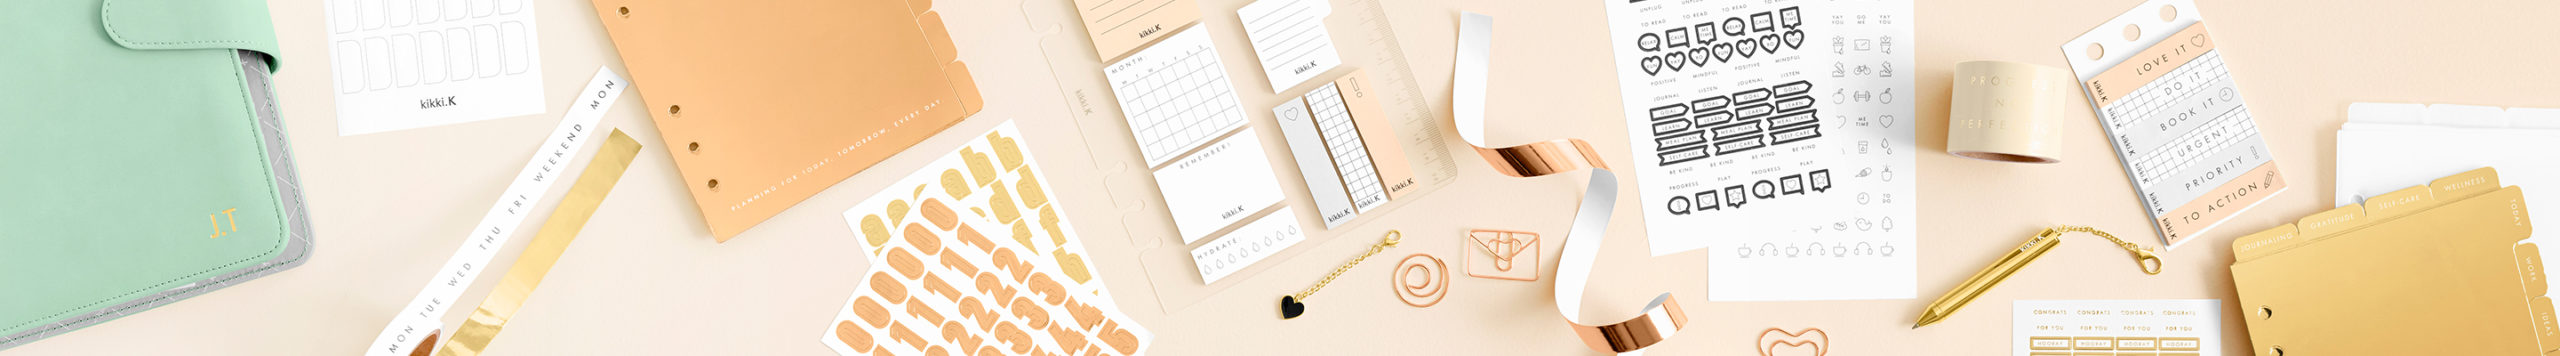 YOUR GUIDE TO PLANNING: THE EASIEST WAYS TO GET STARTED WITH YOUR KIKKI.K PLANNER